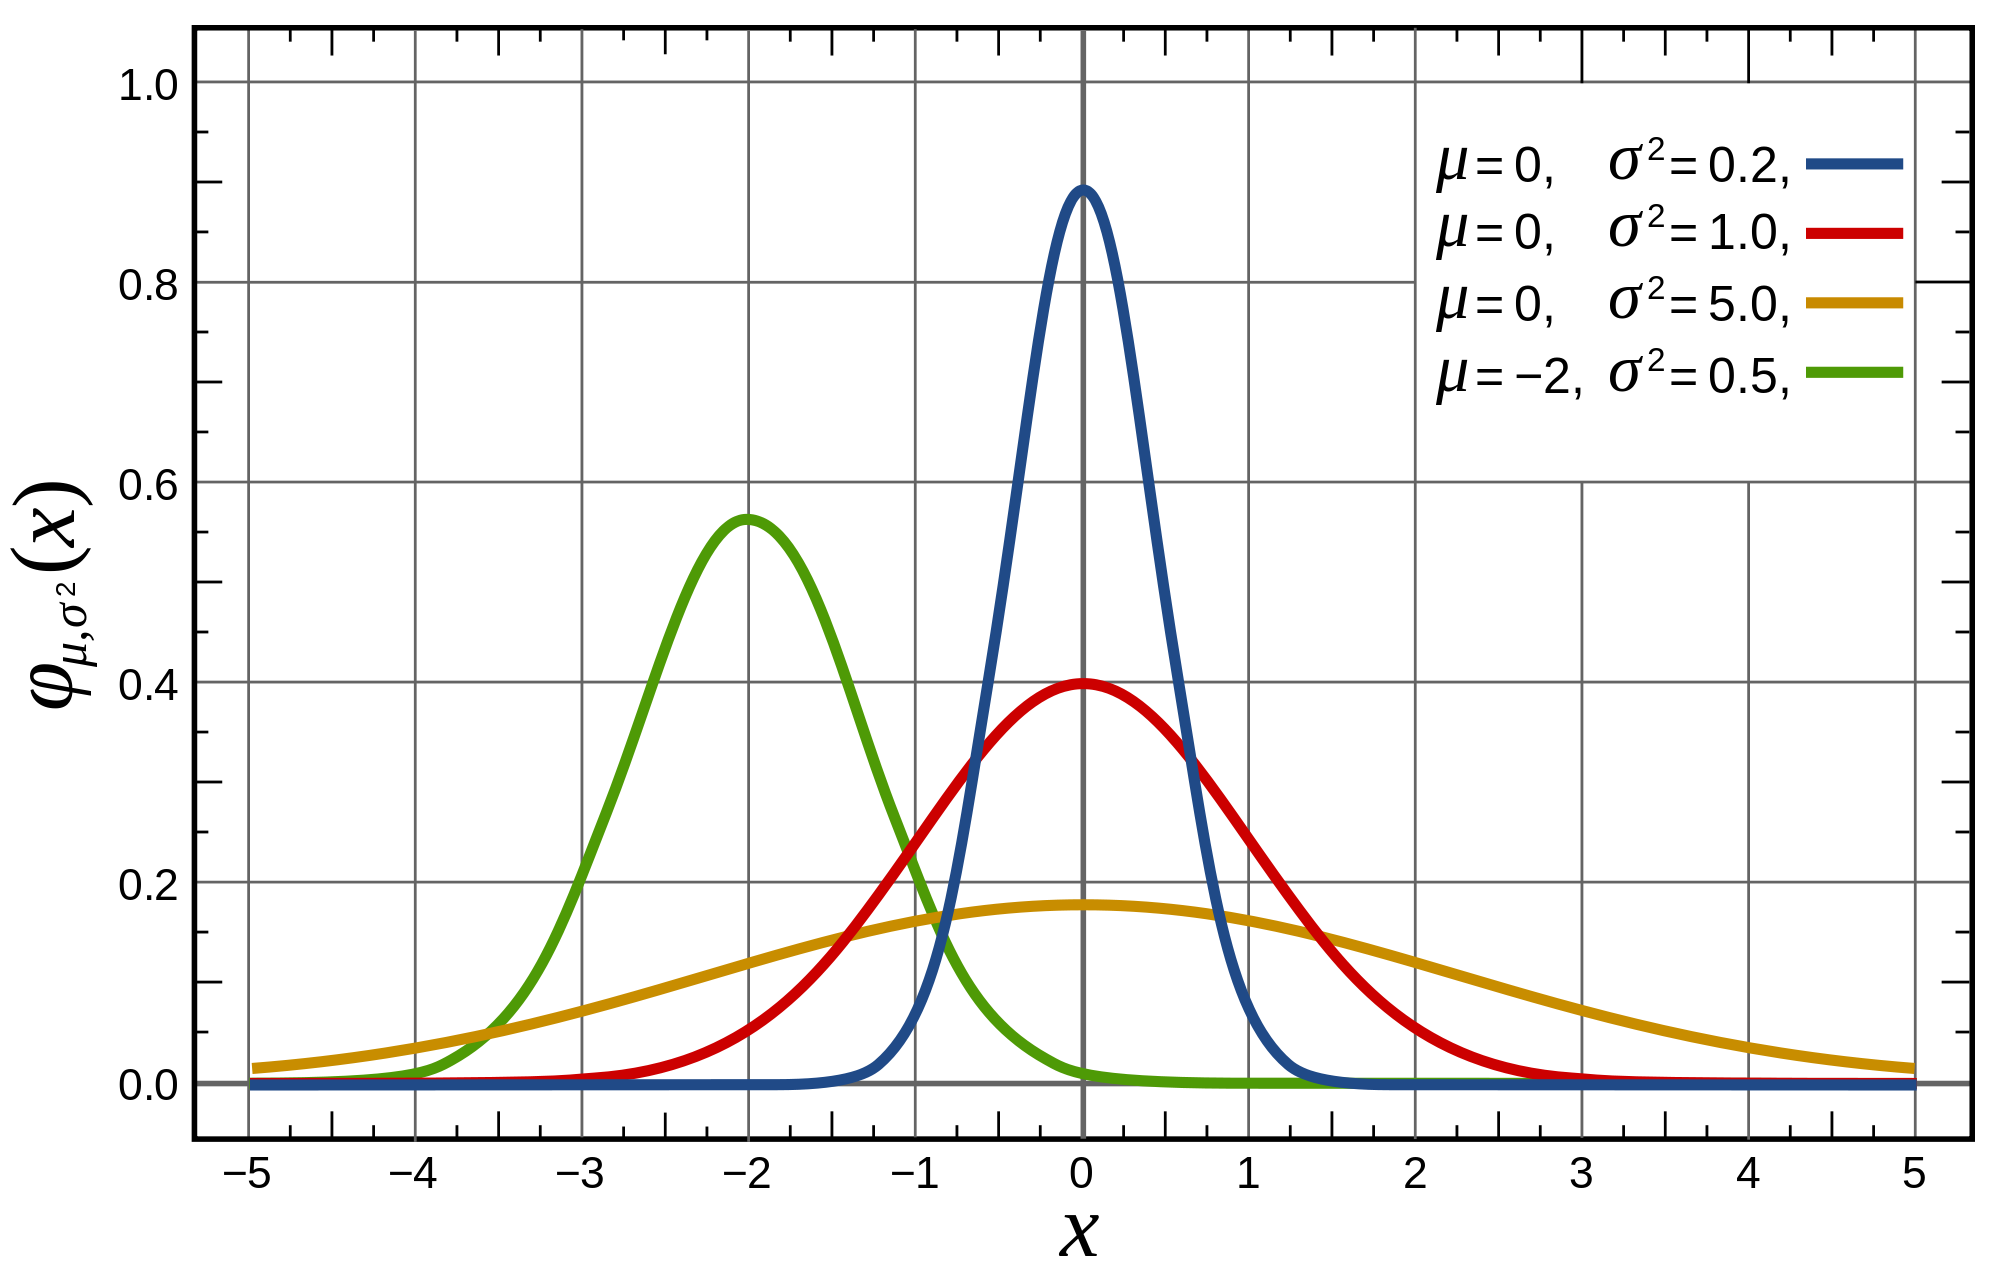 Normal distribution template delphi wiring harness total quality bell curve excel template images templates example free download normaldistributiond352b60730a1f00a8a98165d8f55858a bell curve excel templatehtml pronofoot35fo Choice Image